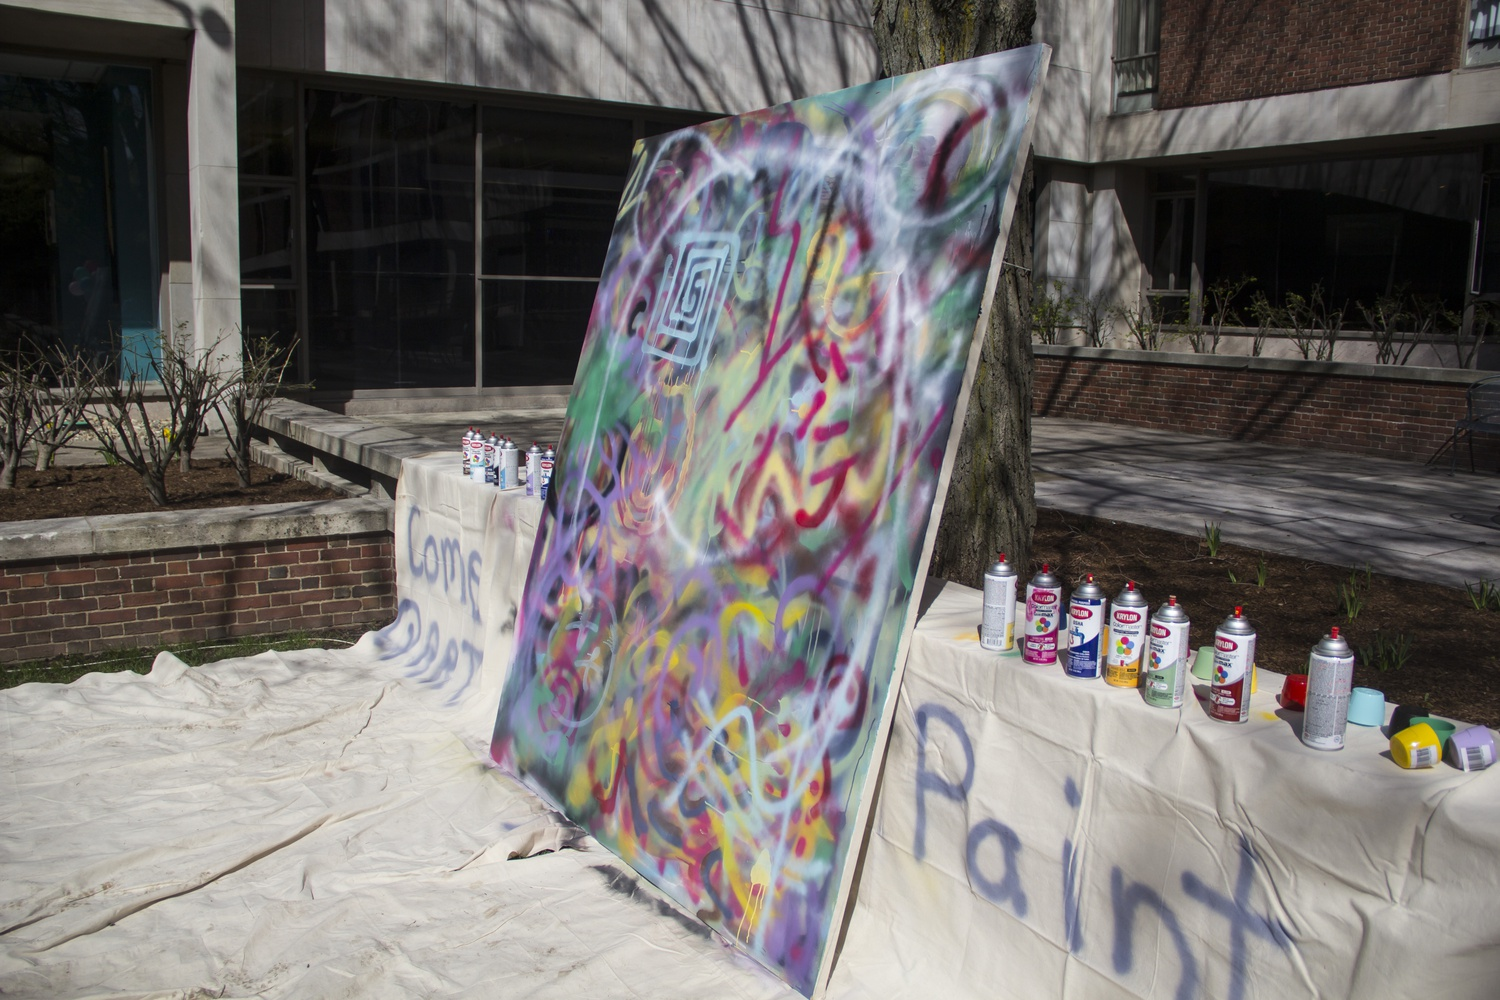 Students used spray paints to color a canvas in Quincy courtyard as part of an Interactive Art in the Courtyard event in the house.